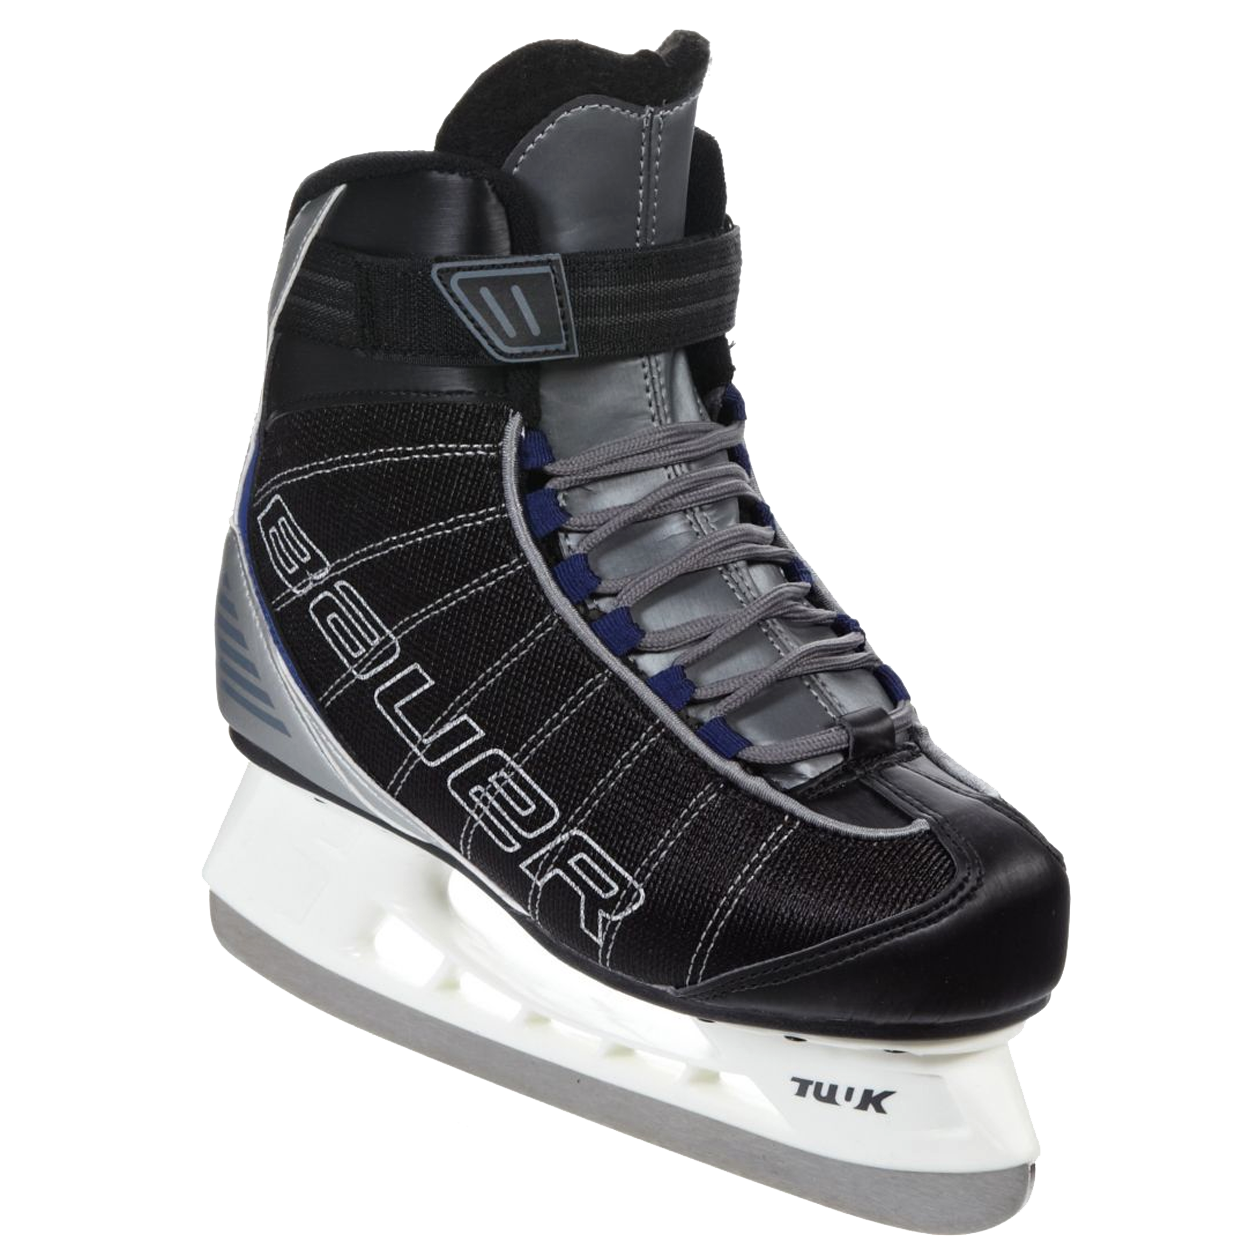 BAUER REC ICE Skate Senior,,Medium